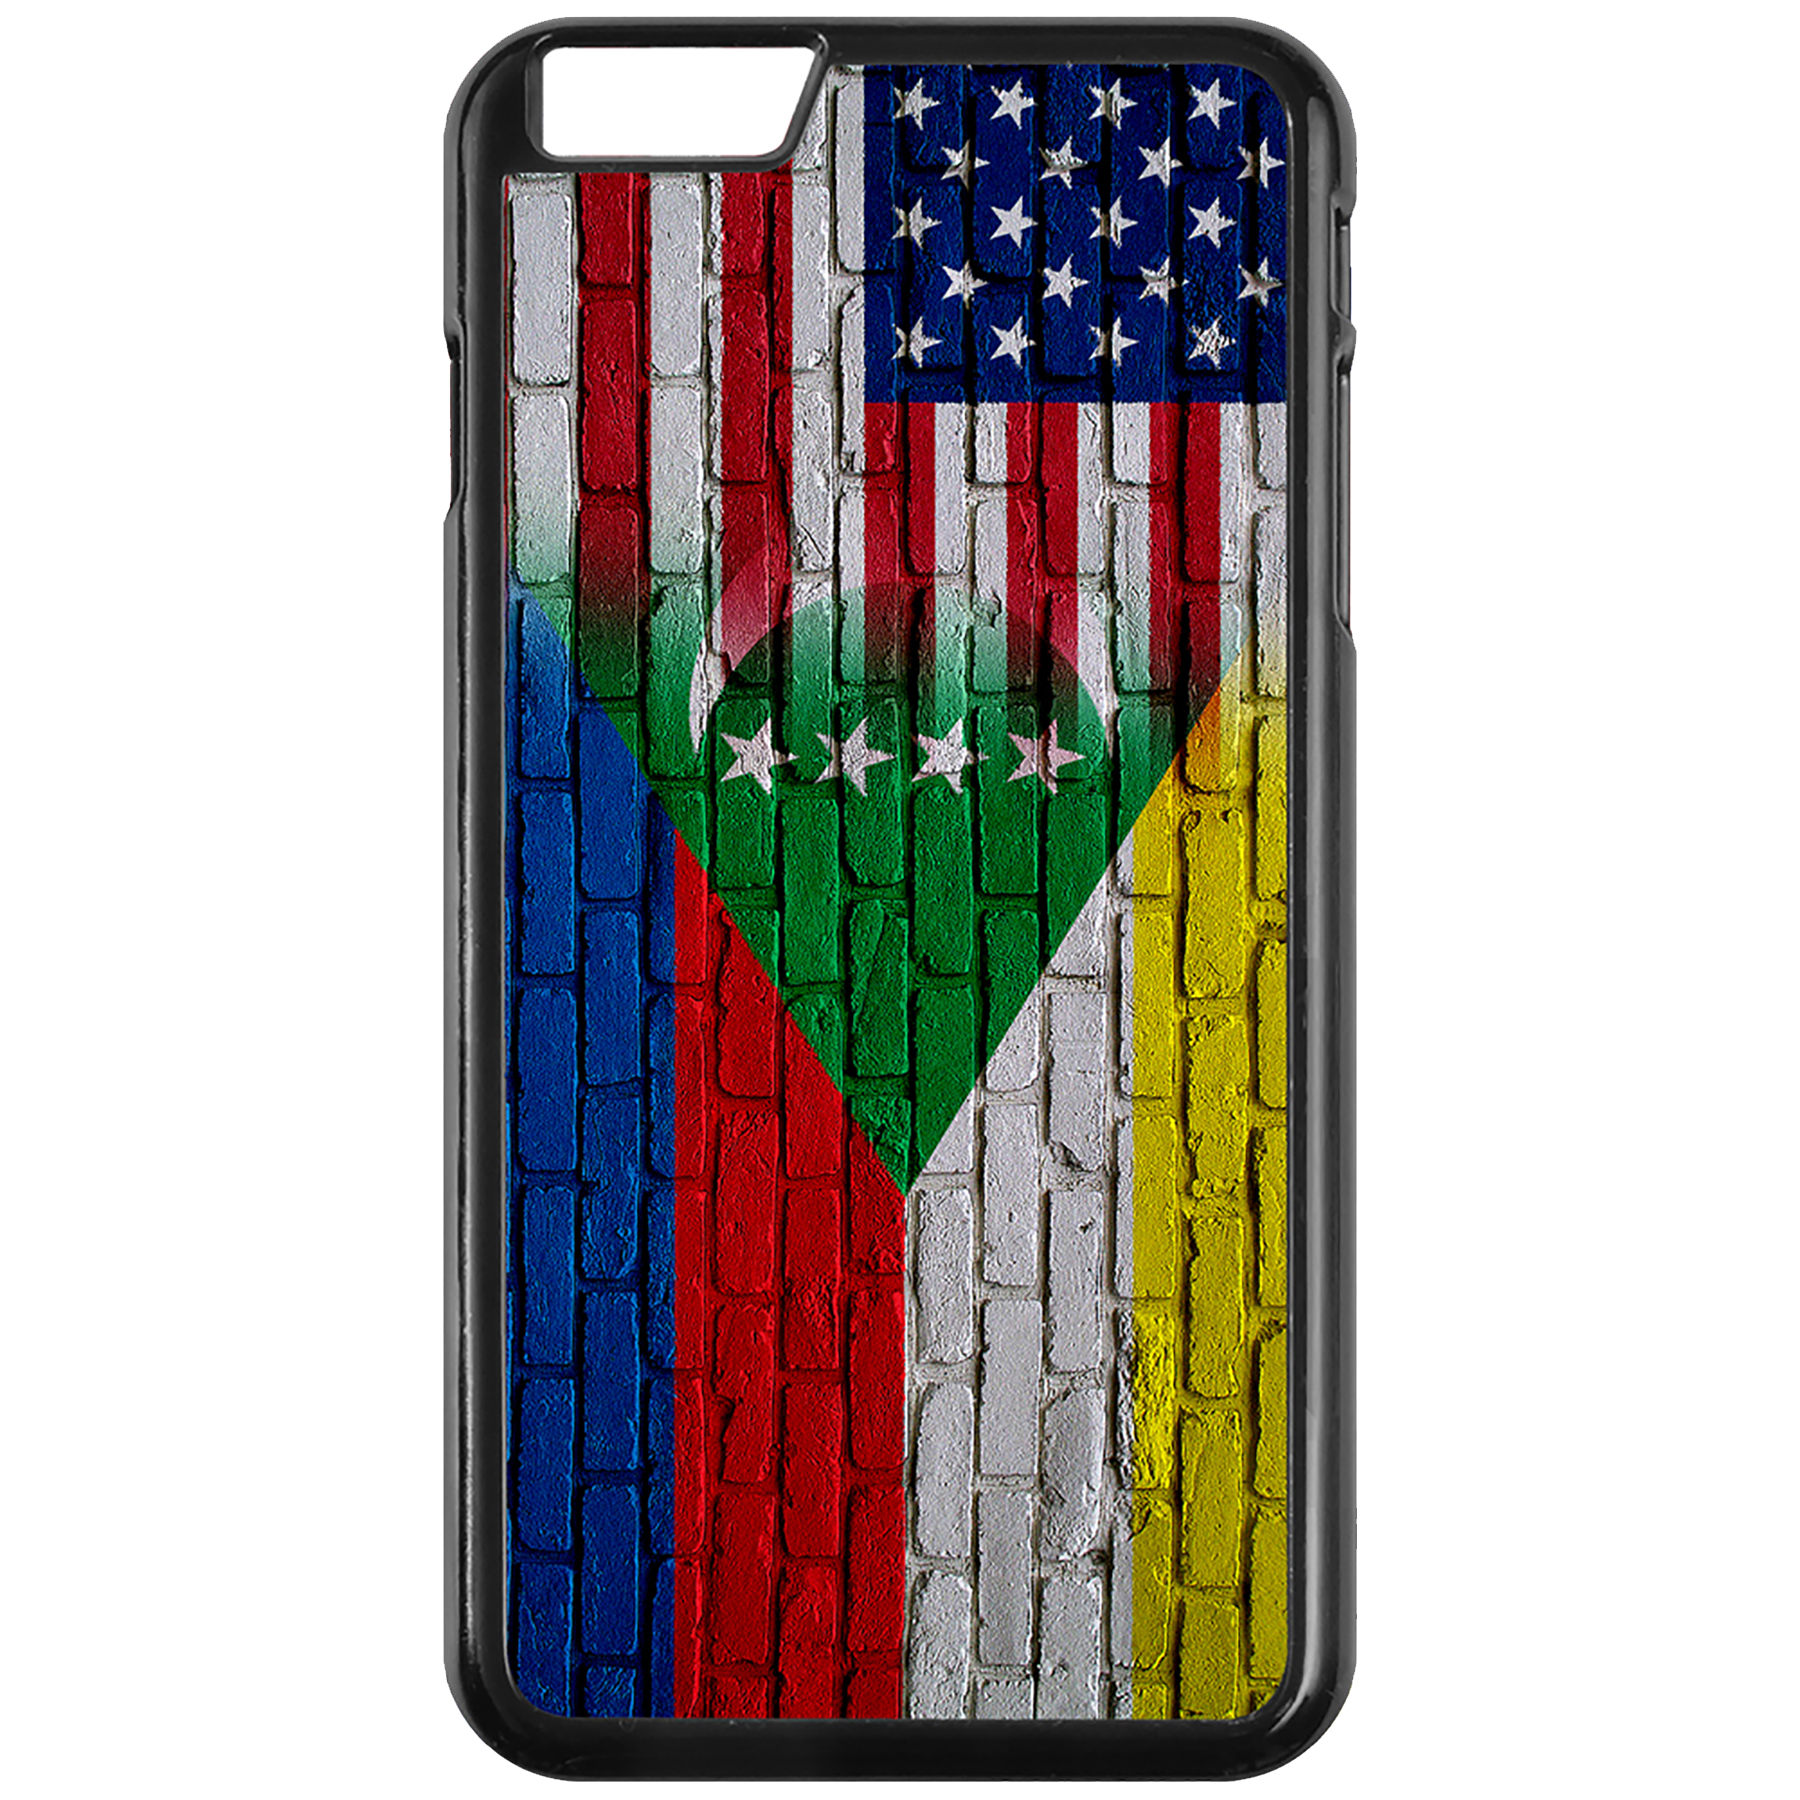 Apple-iPhone-Case-with-Flag-of-Comoros-Comorian-Many-Design-Options thumbnail 60